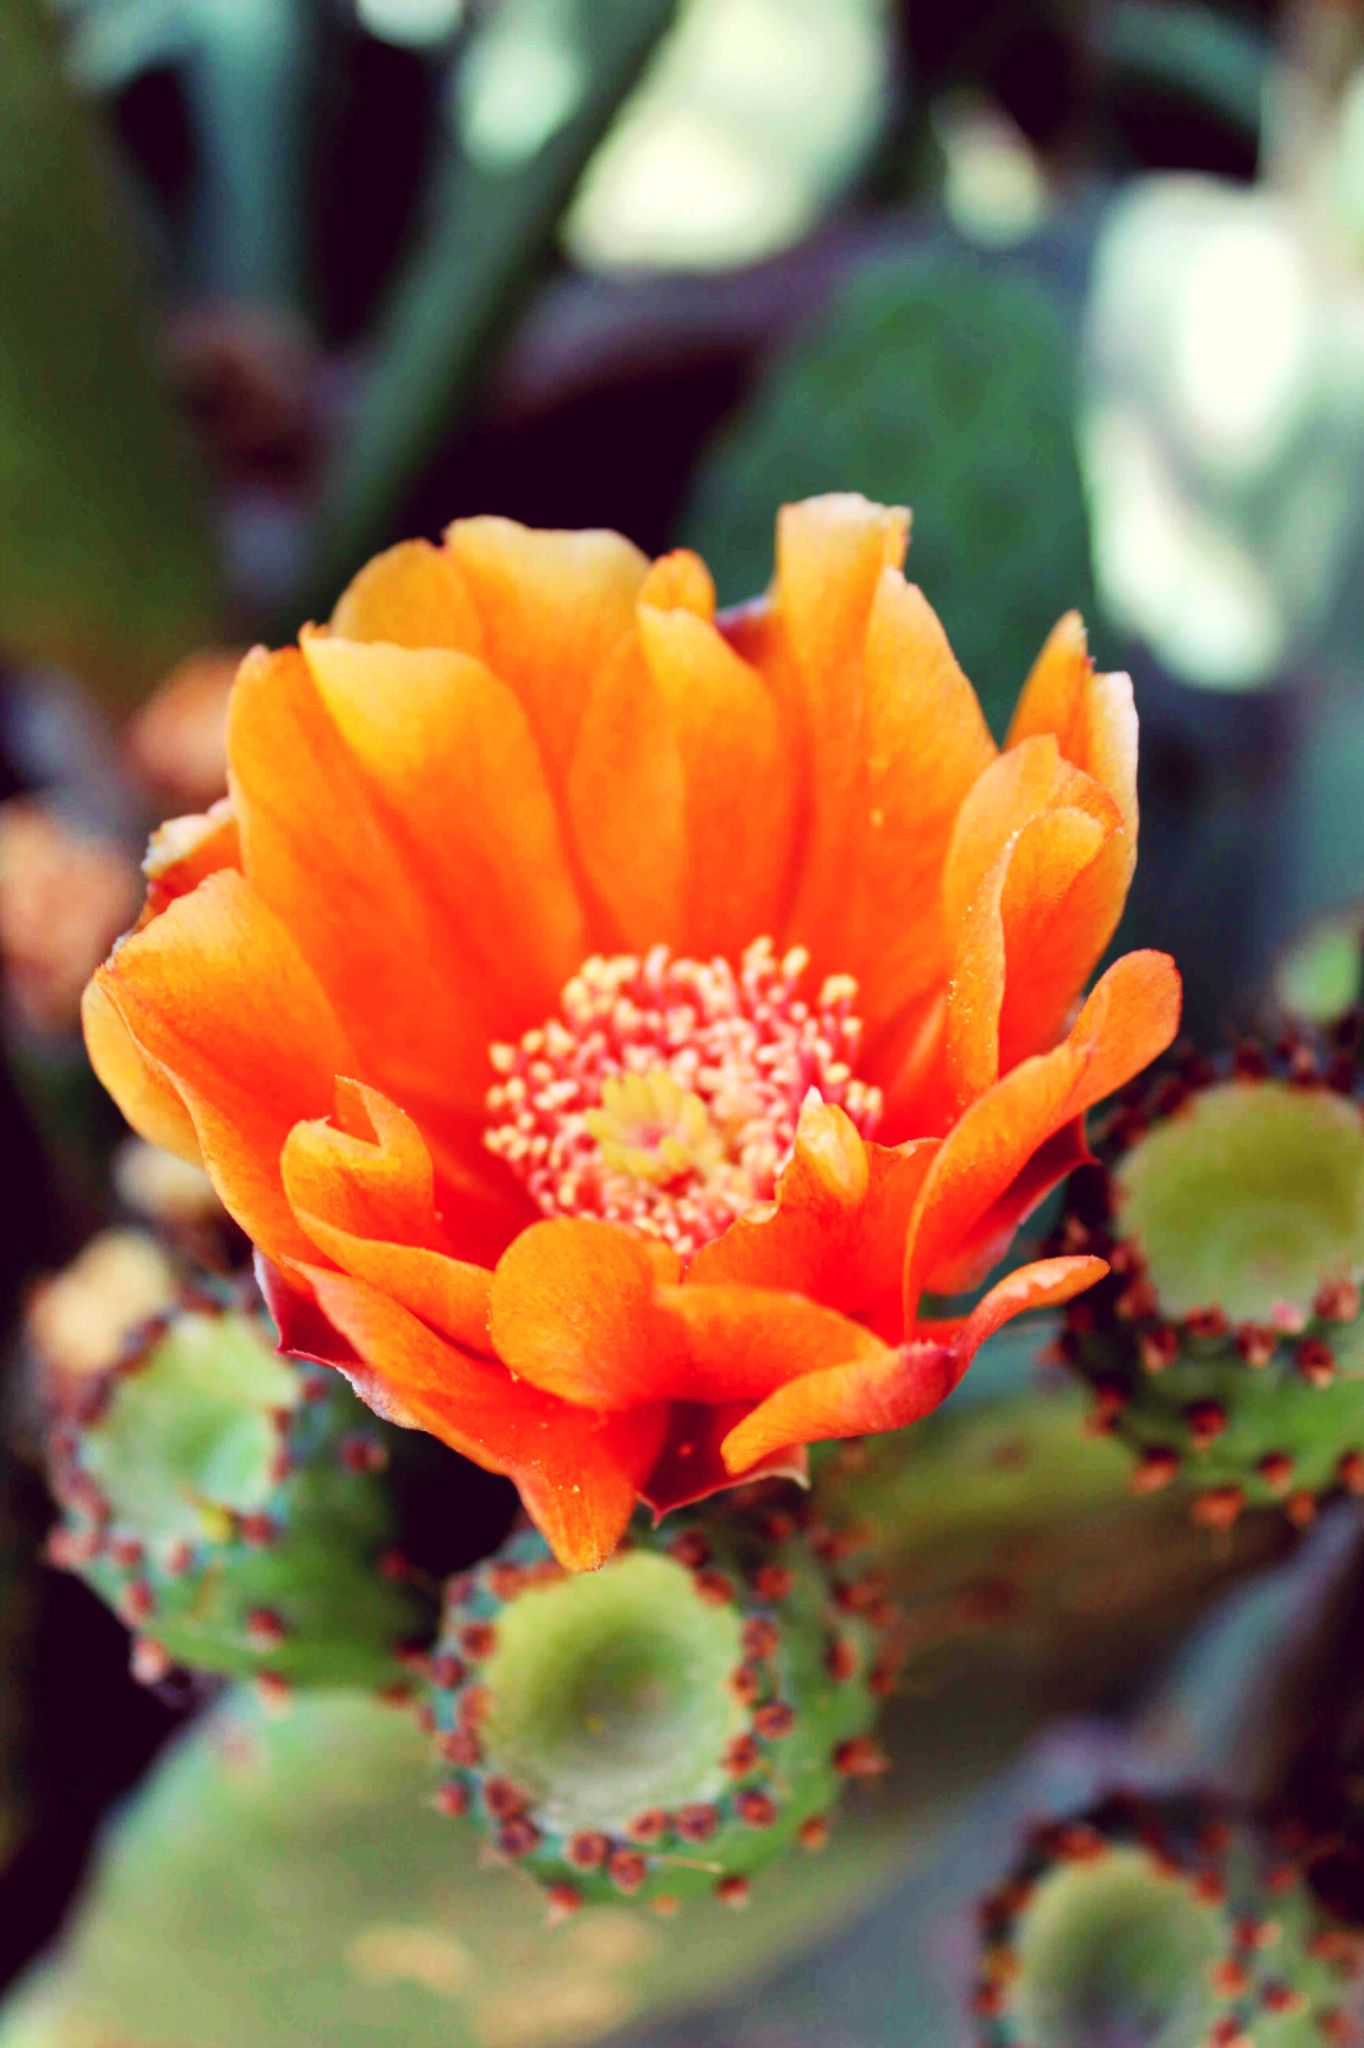 Cactus Flower by Ana